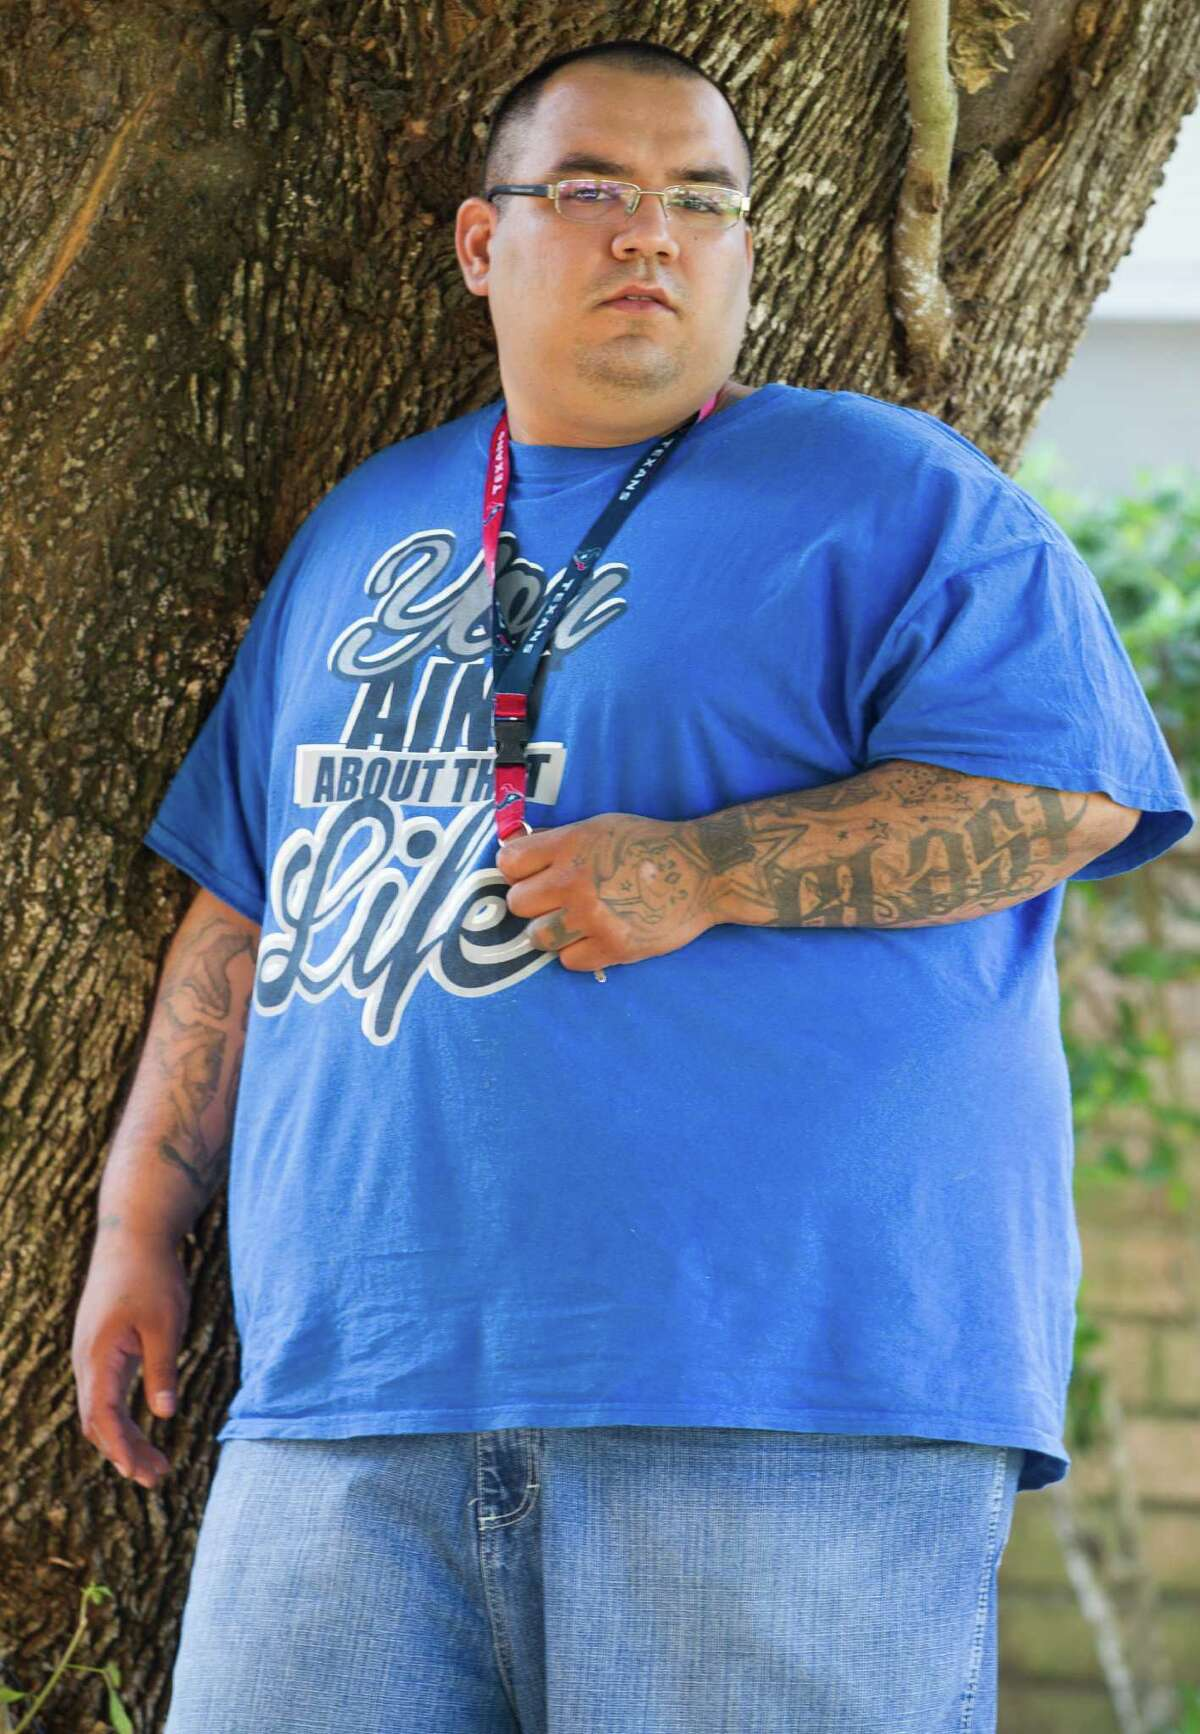 Jacob Estrada was arrested on drug charges in 2006 but freed after his conviction was overturned earlier this year. Now living in Richmond, he is suing the DA.